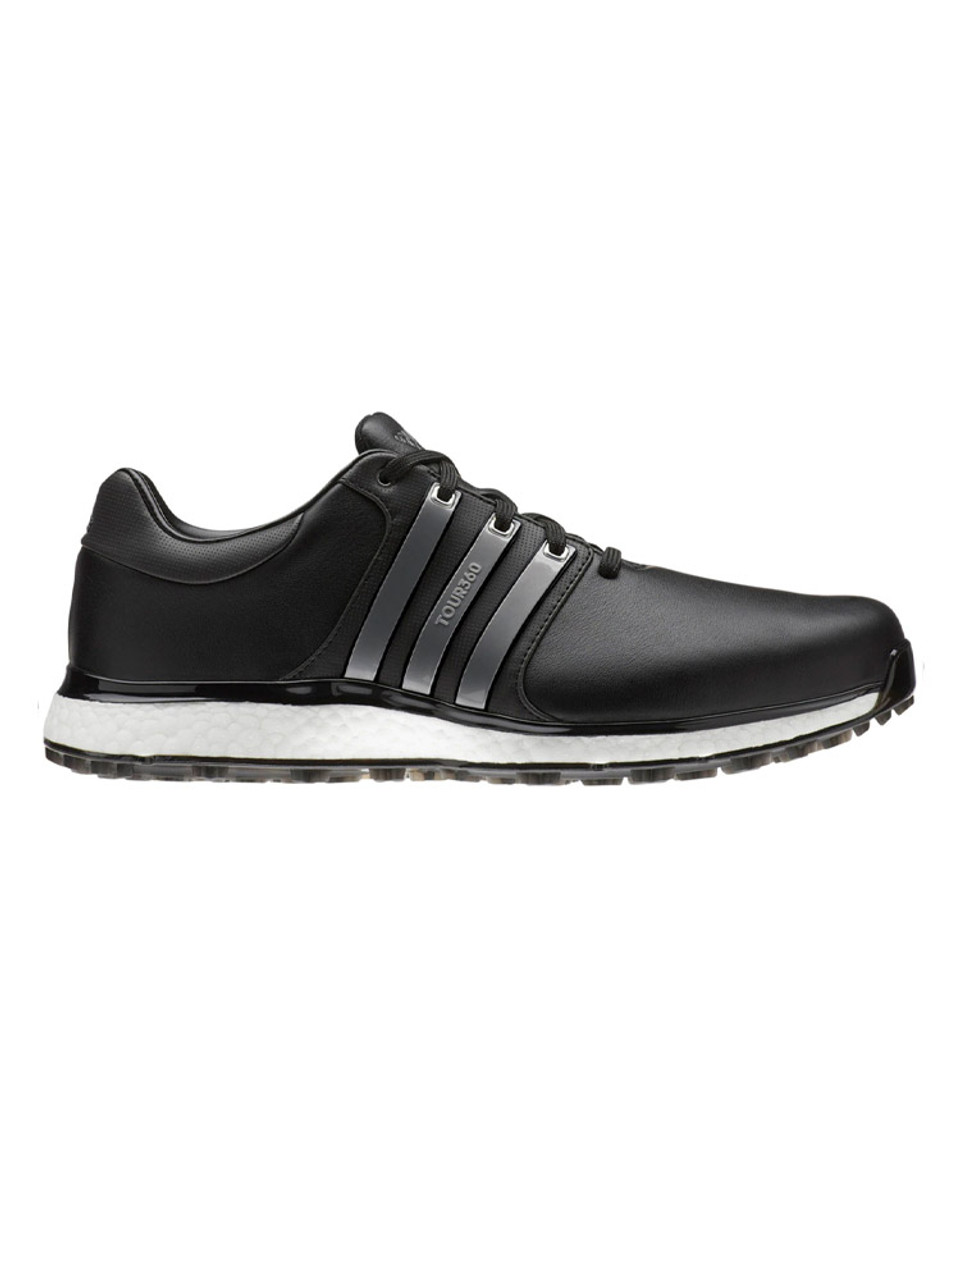 e9e00b350bd1 Adidas Tour360 XT-SL Golf Shoes - Core Black Iron Met White - Mens ...